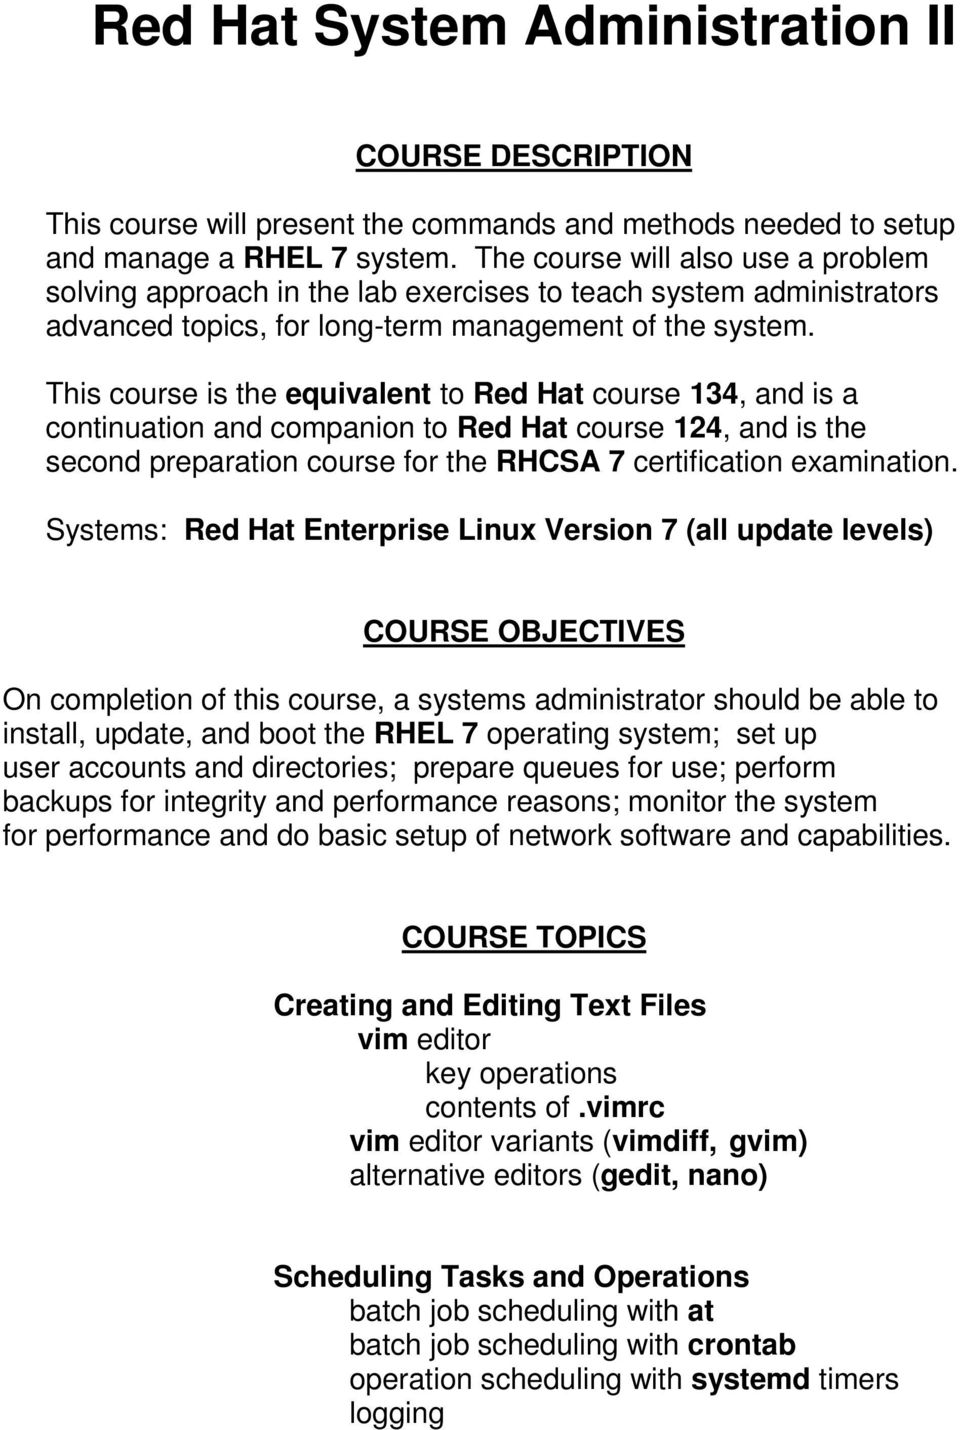 Red Hat Enterprise Linux (RHEL 7) Courses - PDF